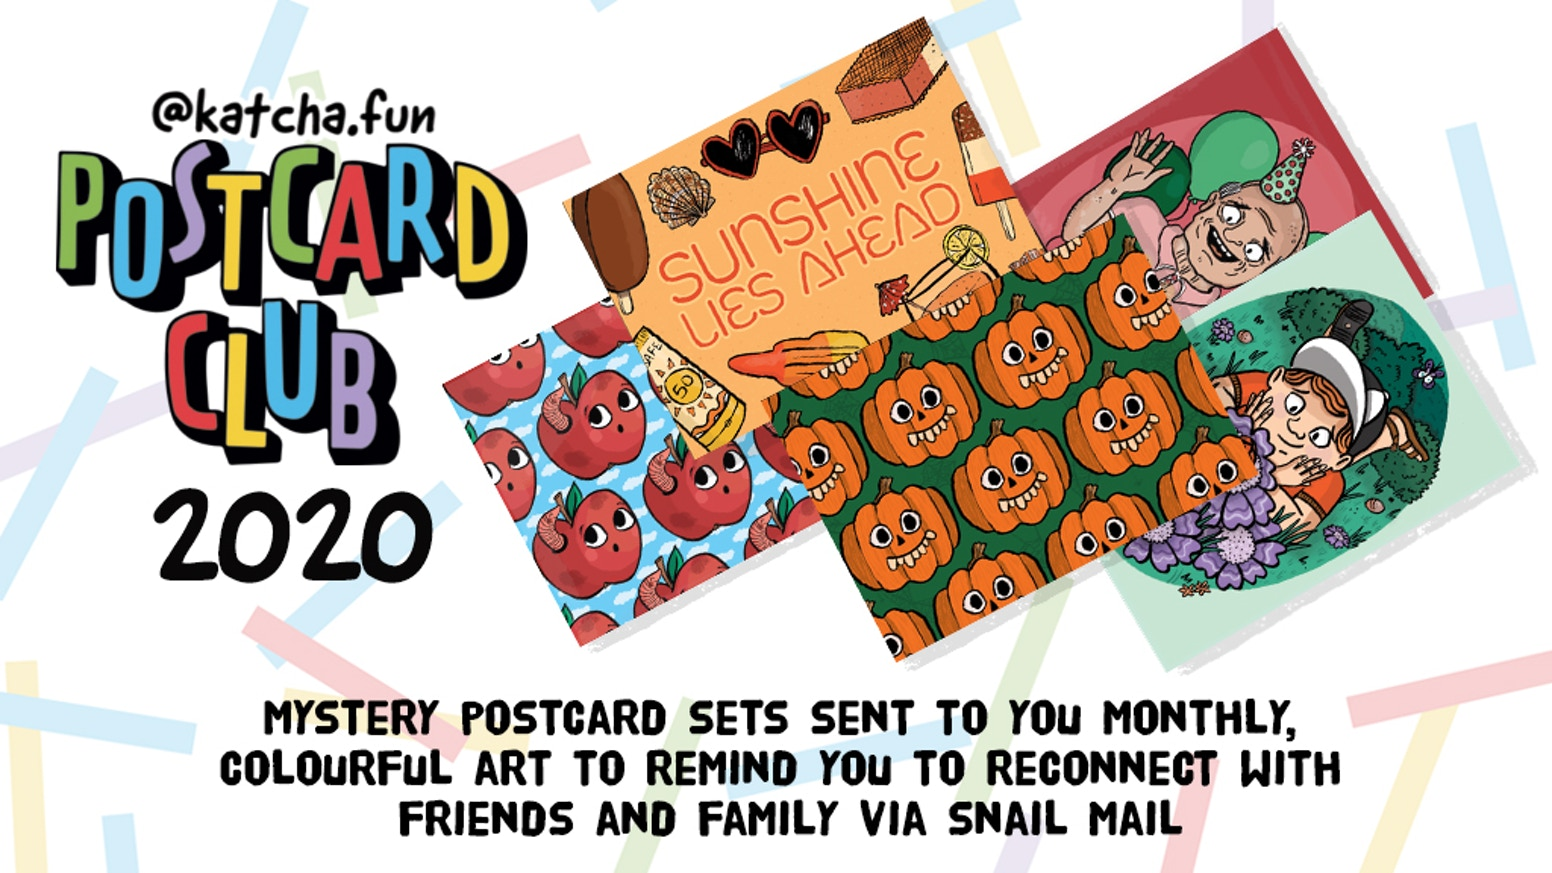 Mystery illustrated postcards delivered monthly to prompt you to write and amuse friends and family alike.